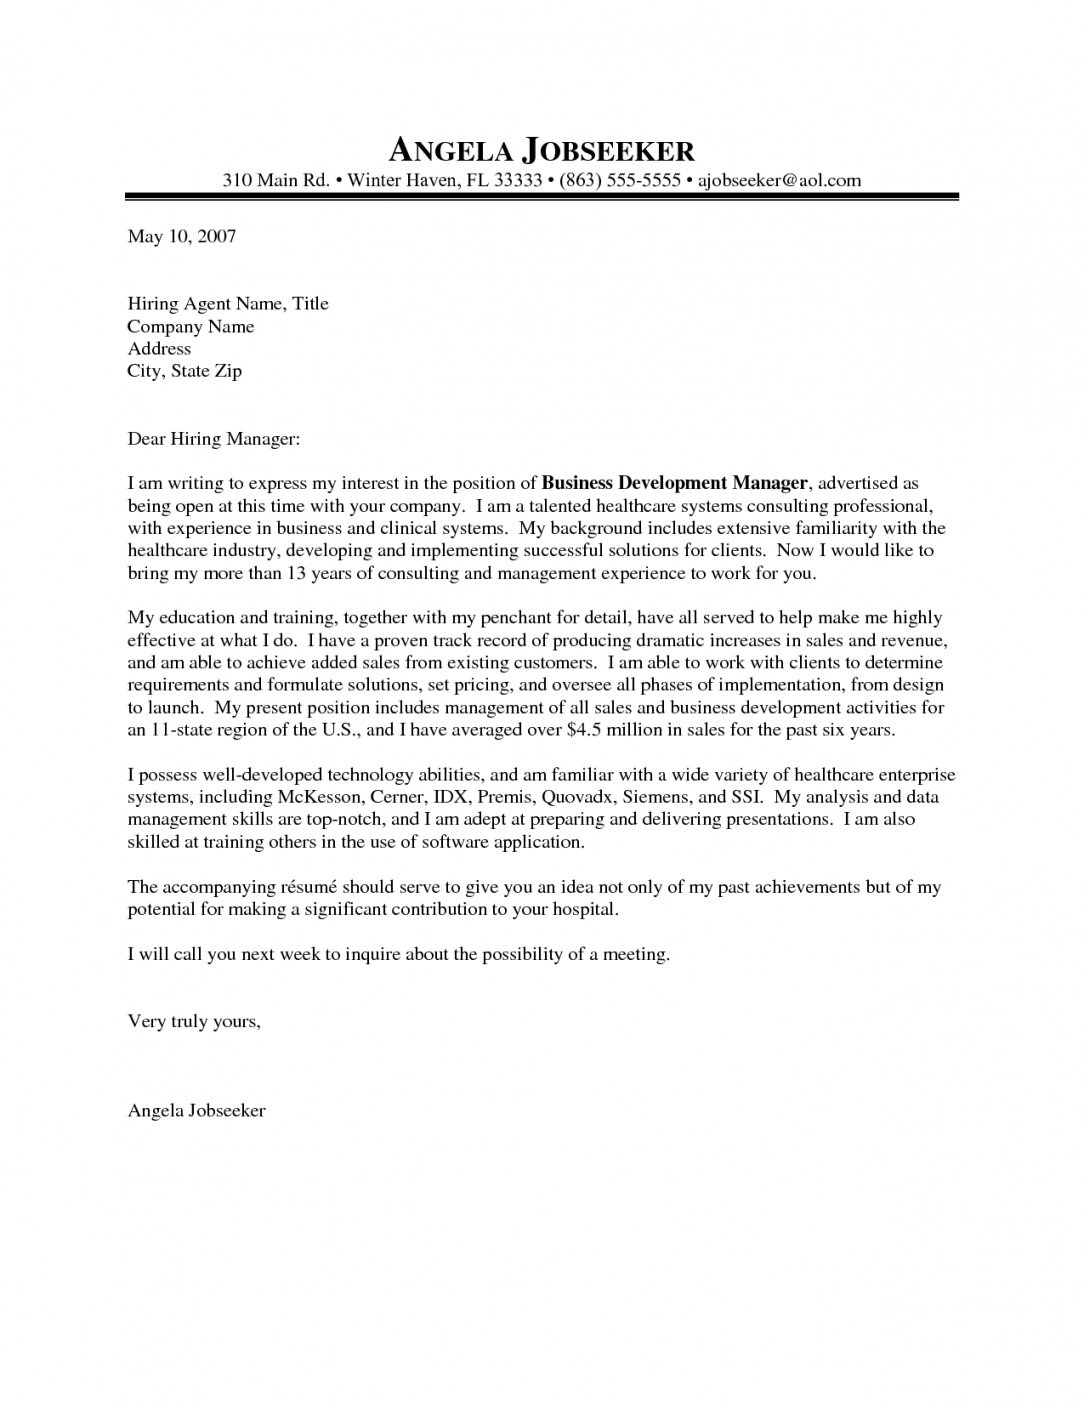 free health care cover letter writing a cover letter cover letter health care cover letter template pdf